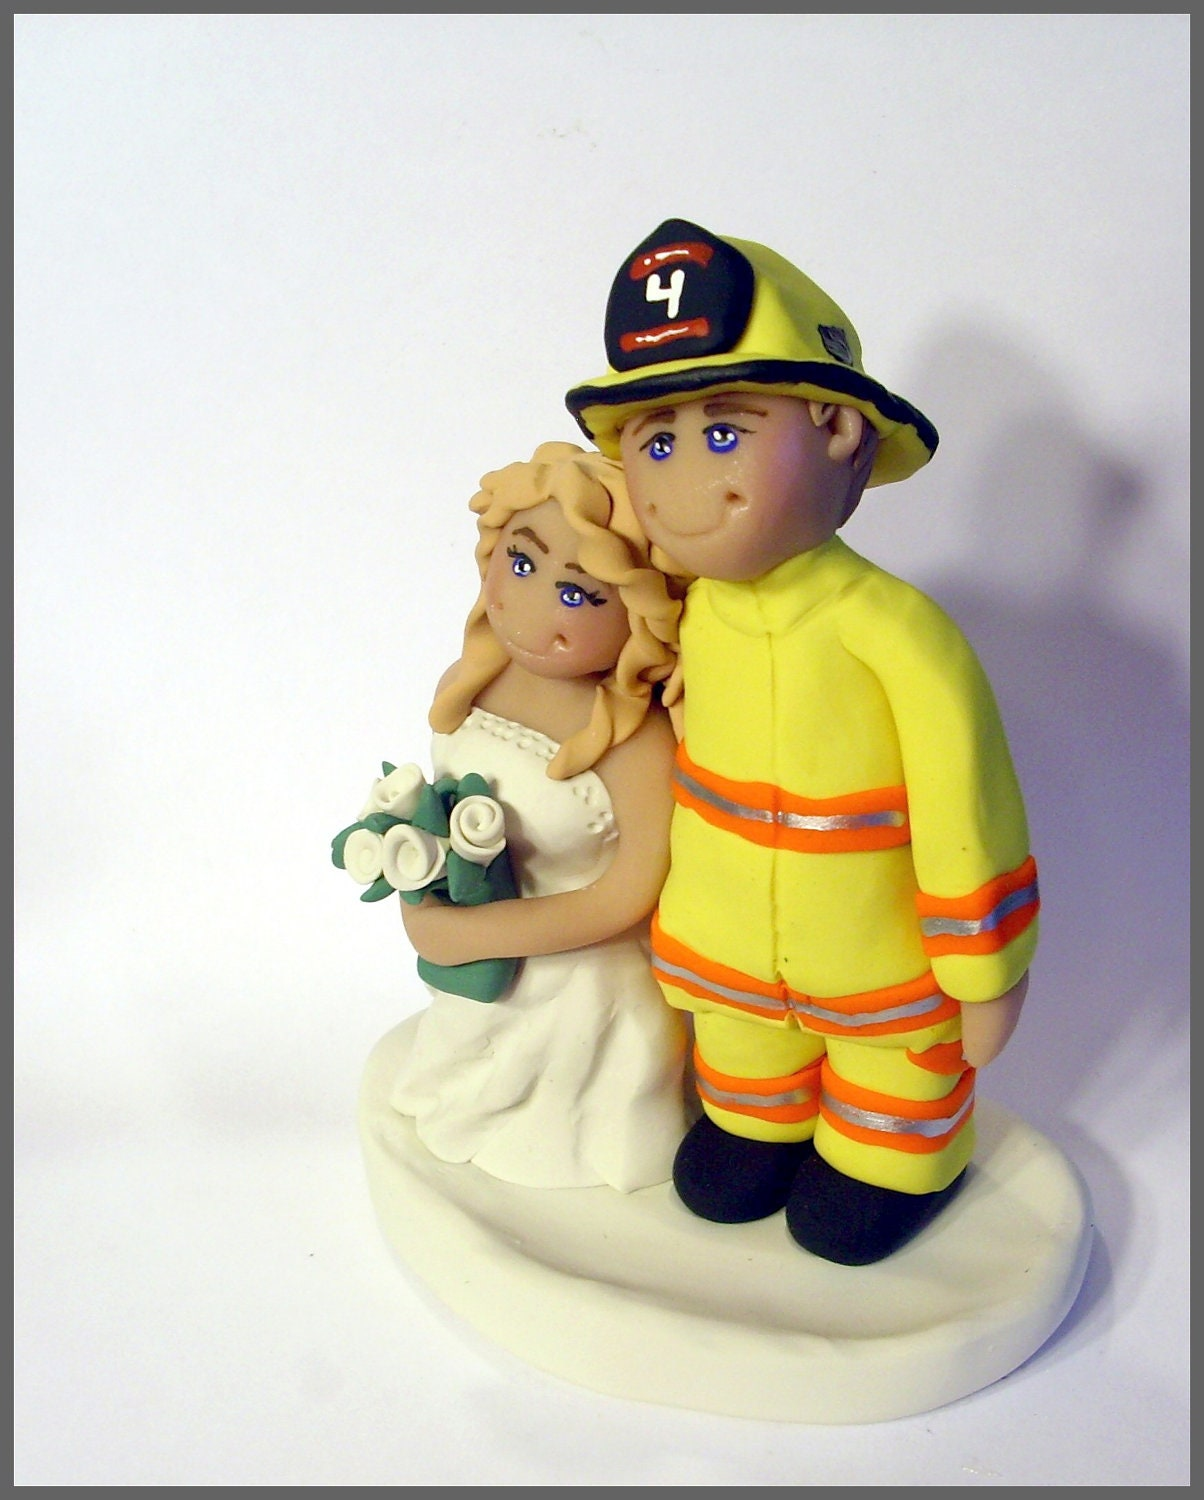 fireman and bride wedding cake toppers fireman wedding cake topper by gingerbabies on etsy 14268